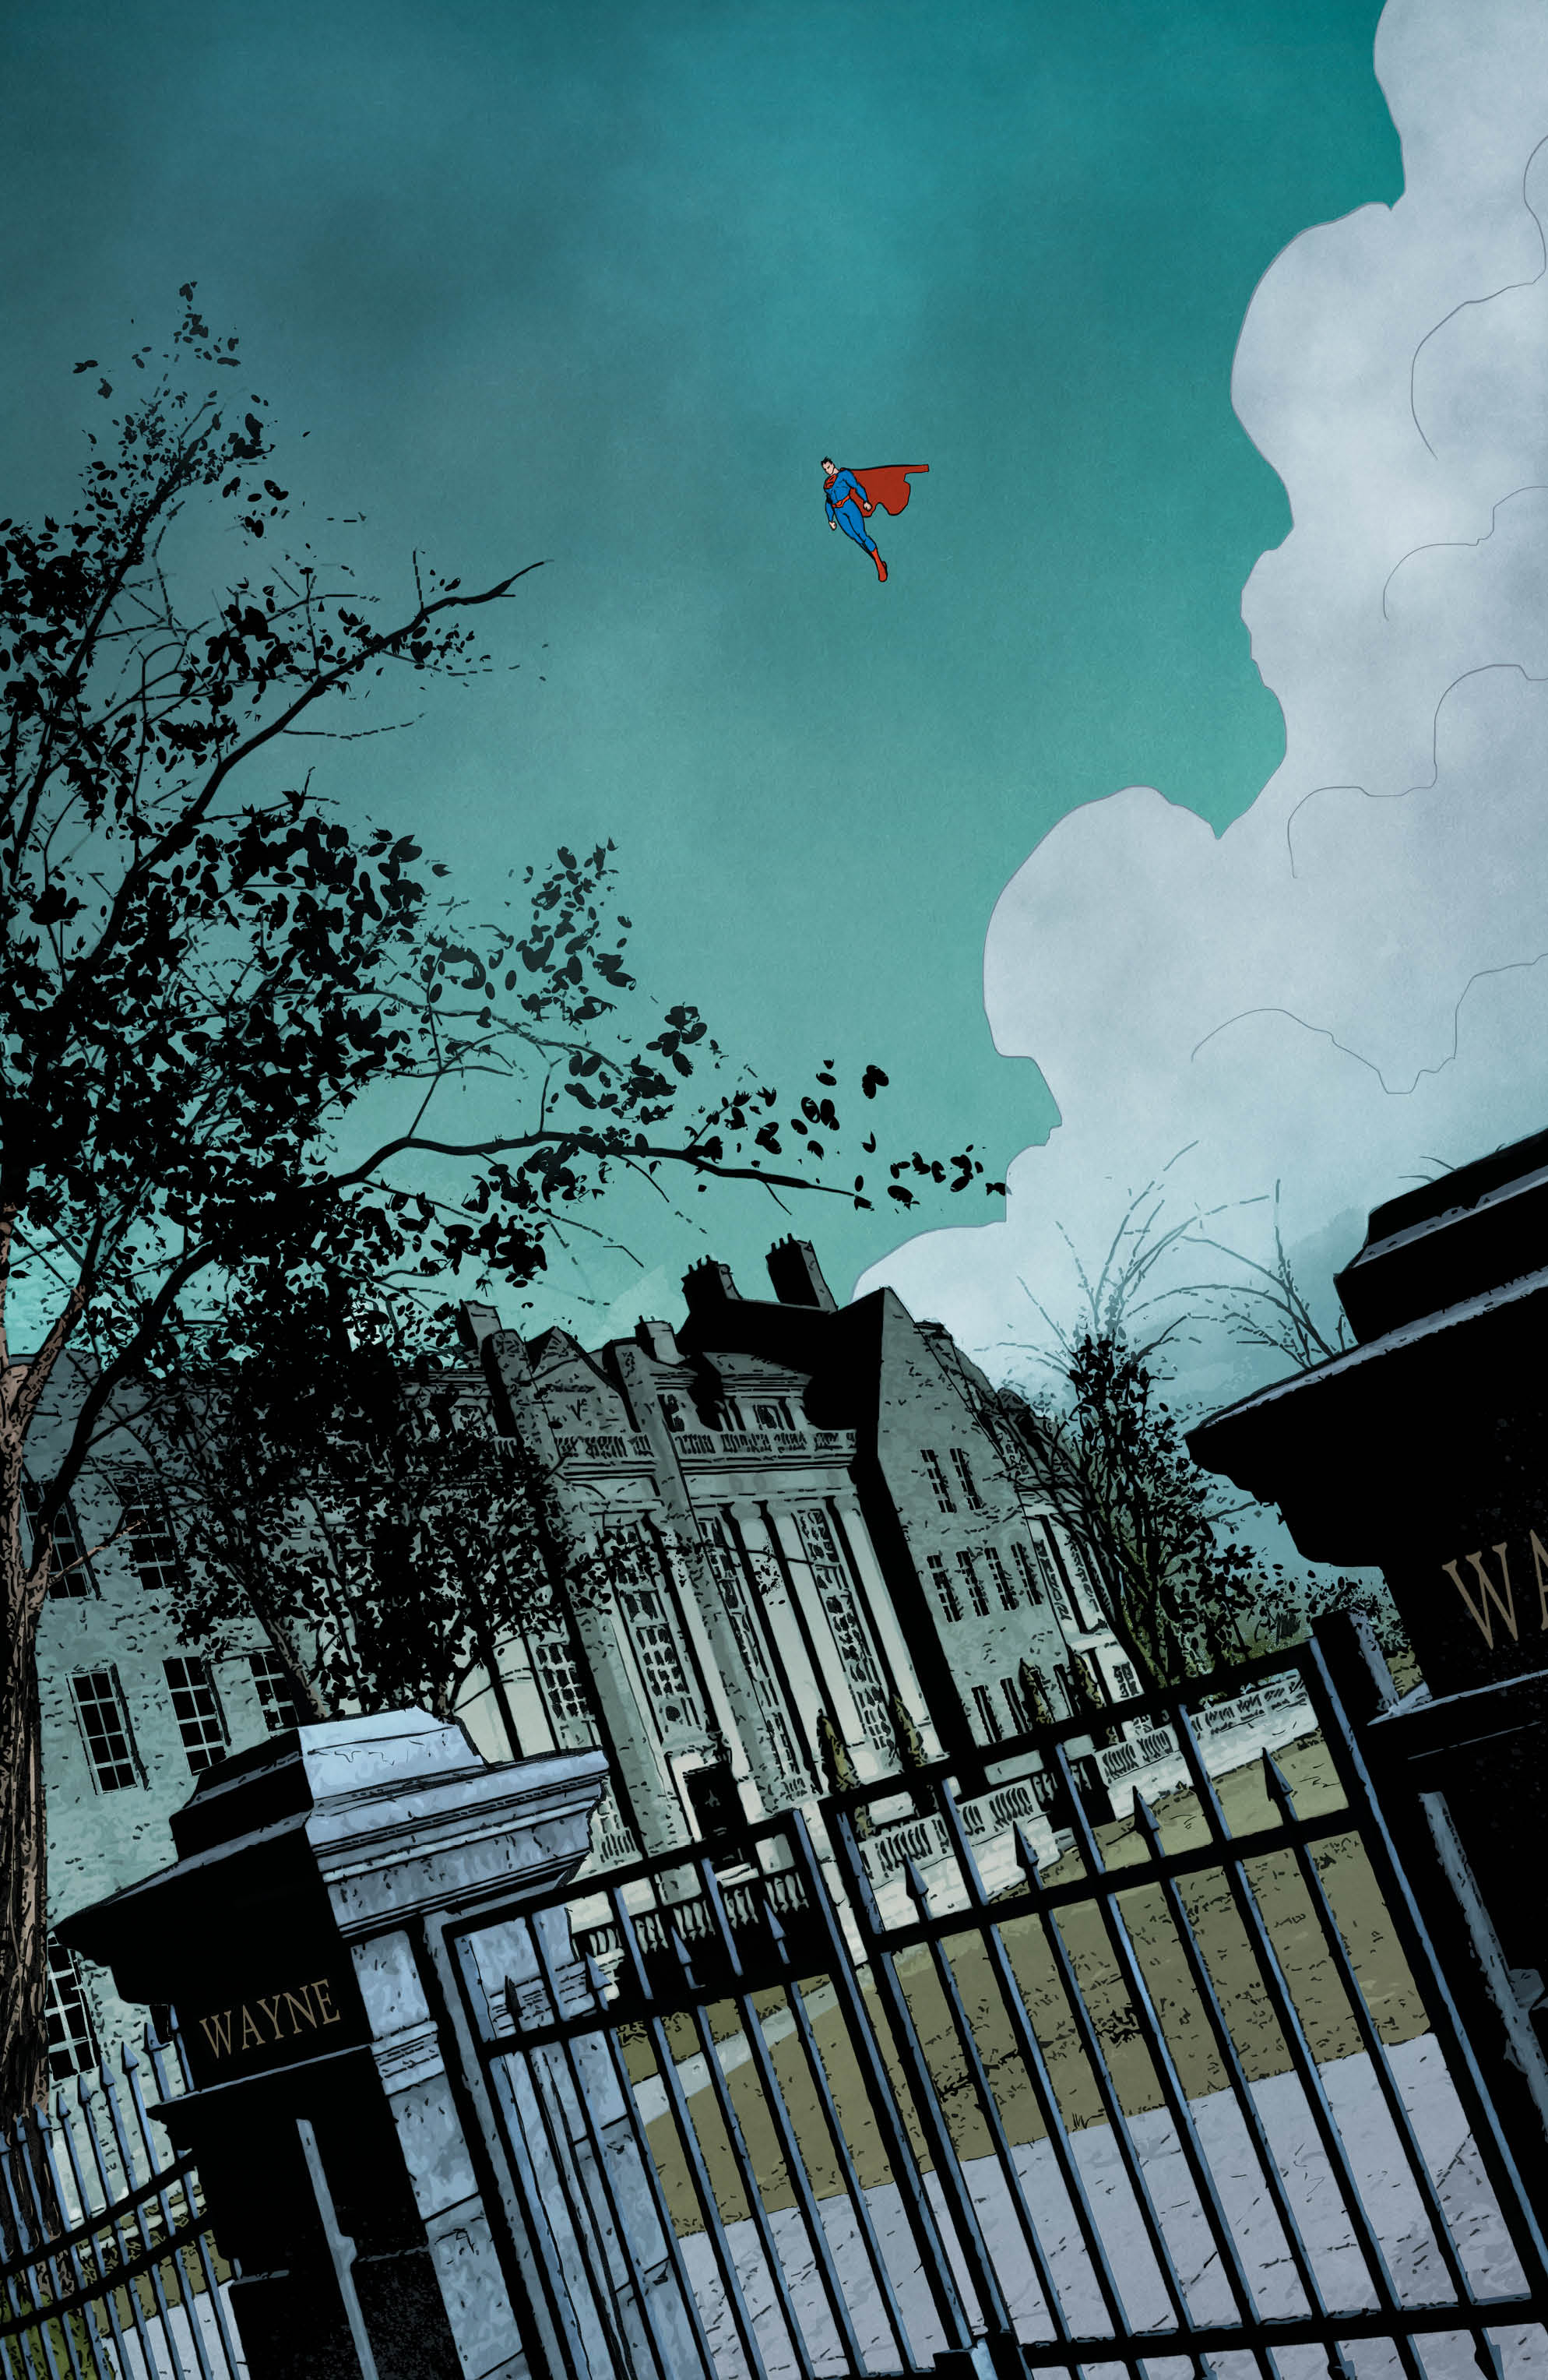 Superman patrols Wayne Manor grounds from the sky